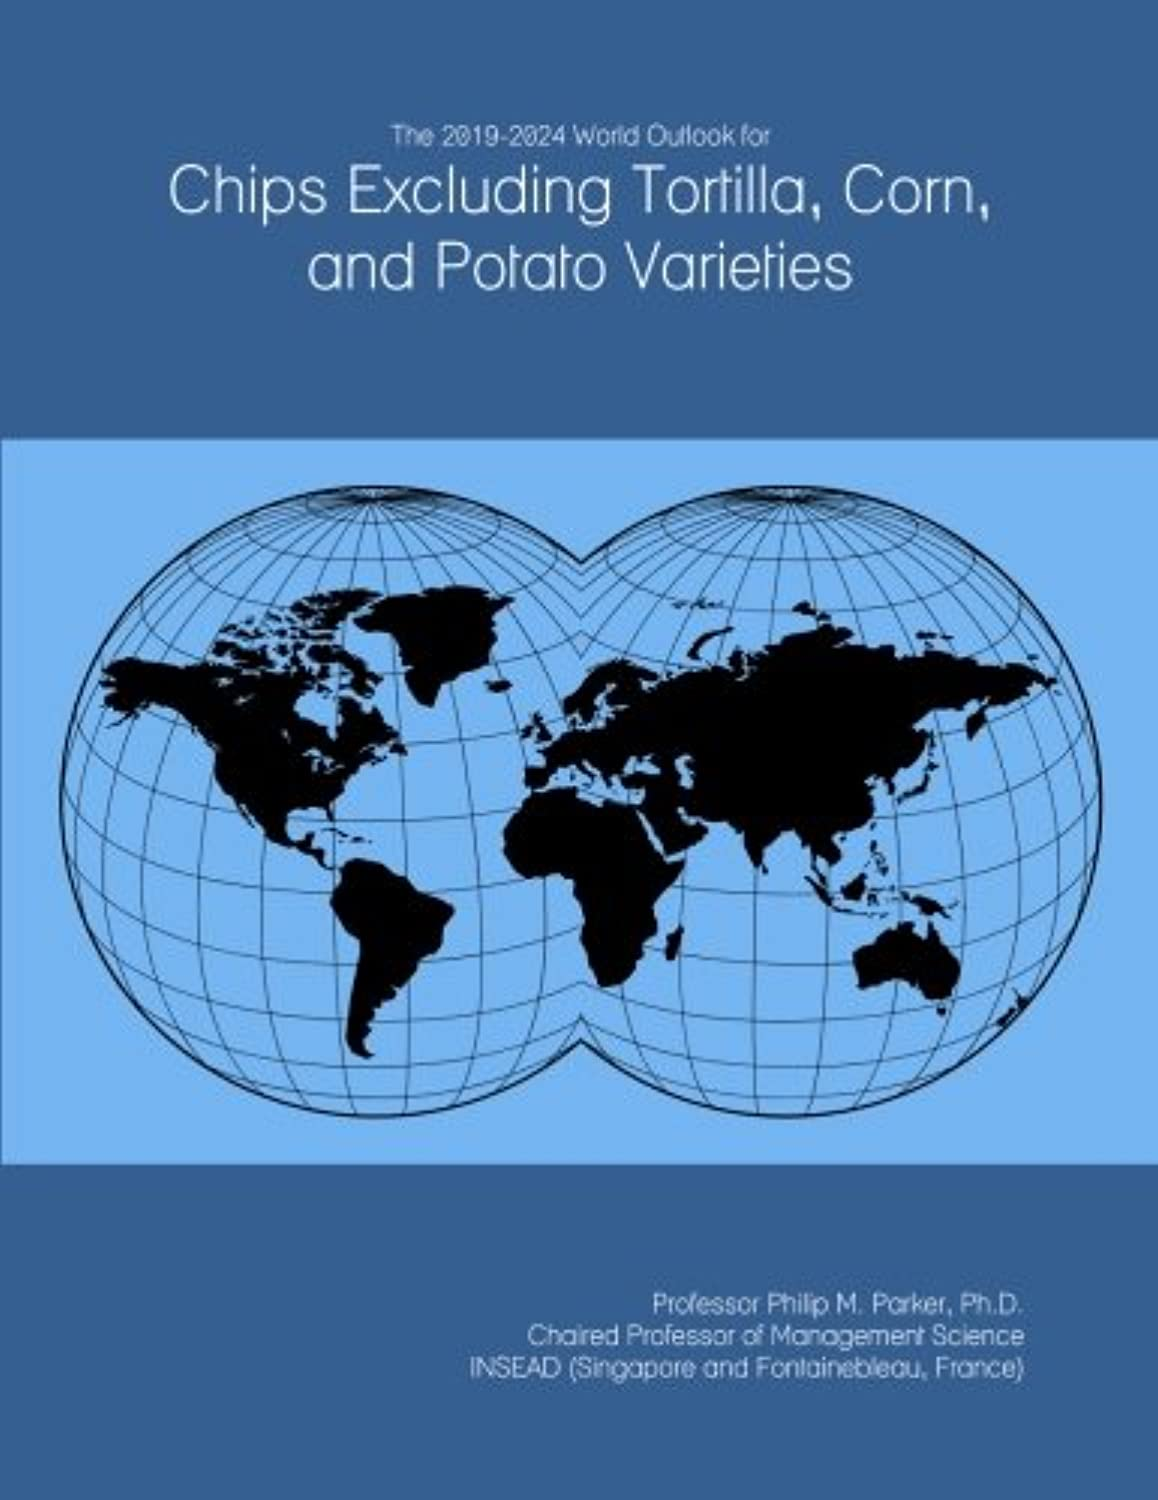 The 2019-2024 World Outlook for Chips Excluding Tortilla, Corn, and Potato Varieties